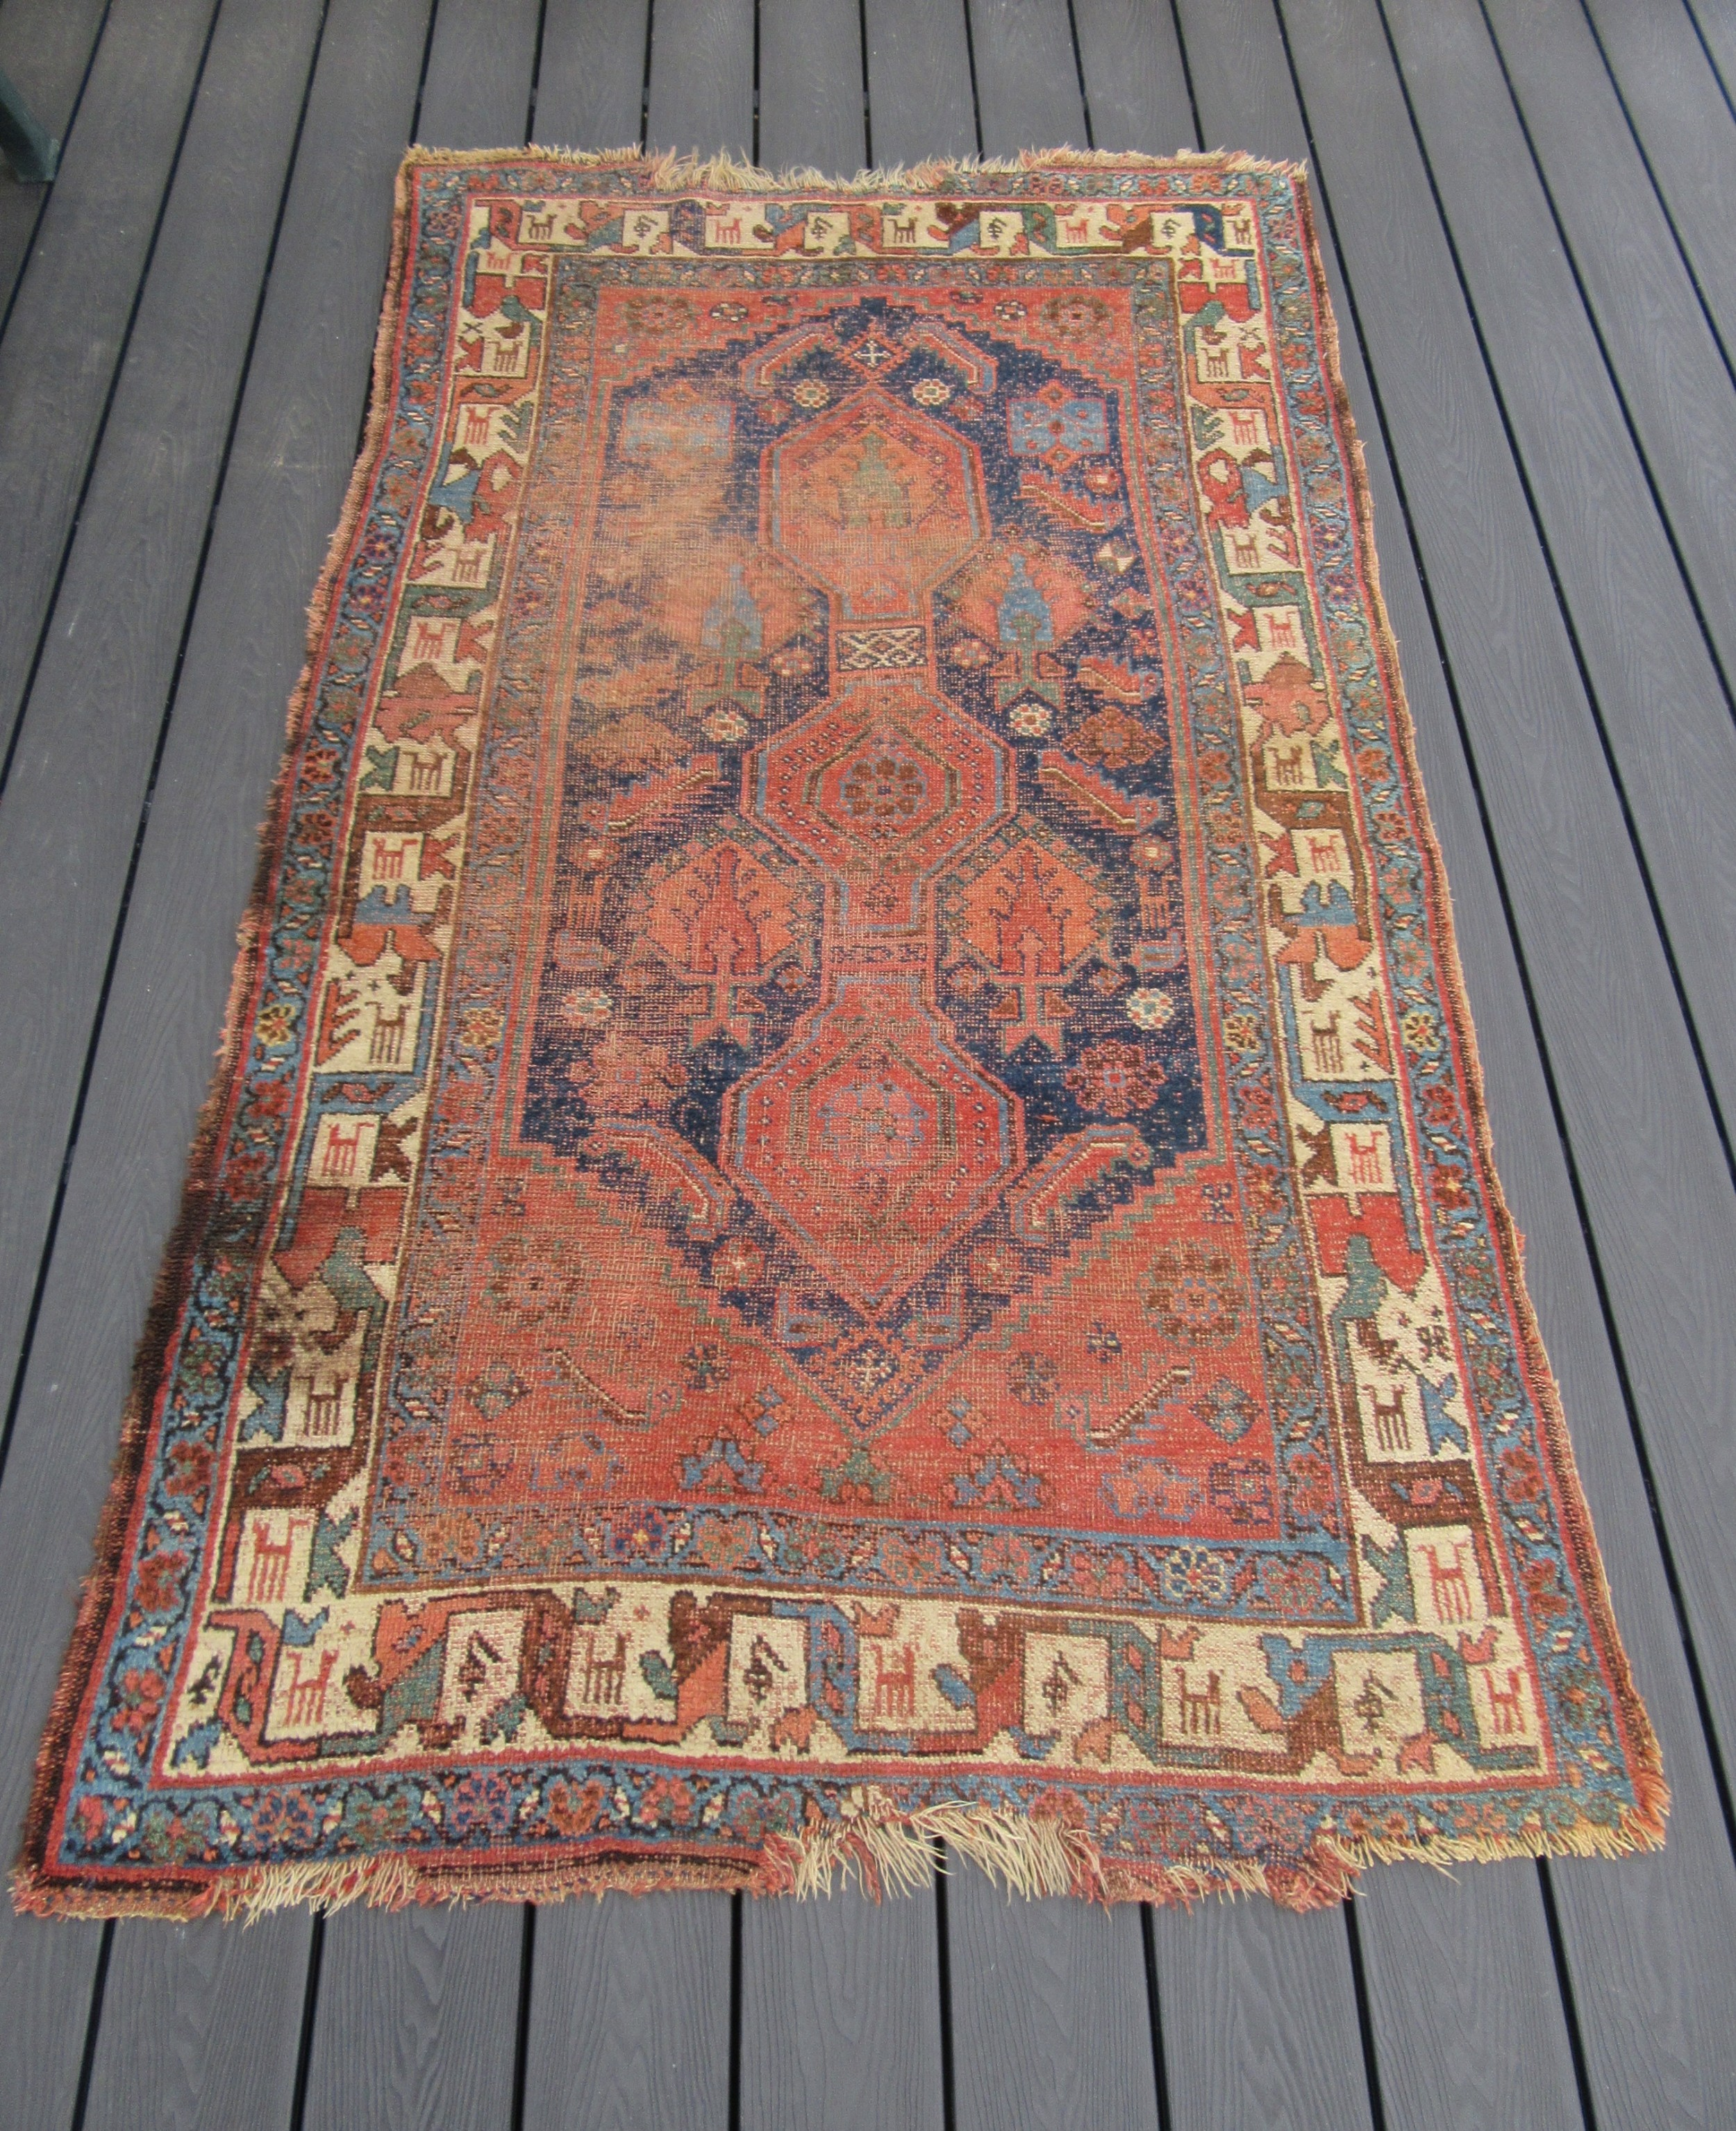 a very antique country house shabby chic north west persian kurdish rug carpet unusual animal border design